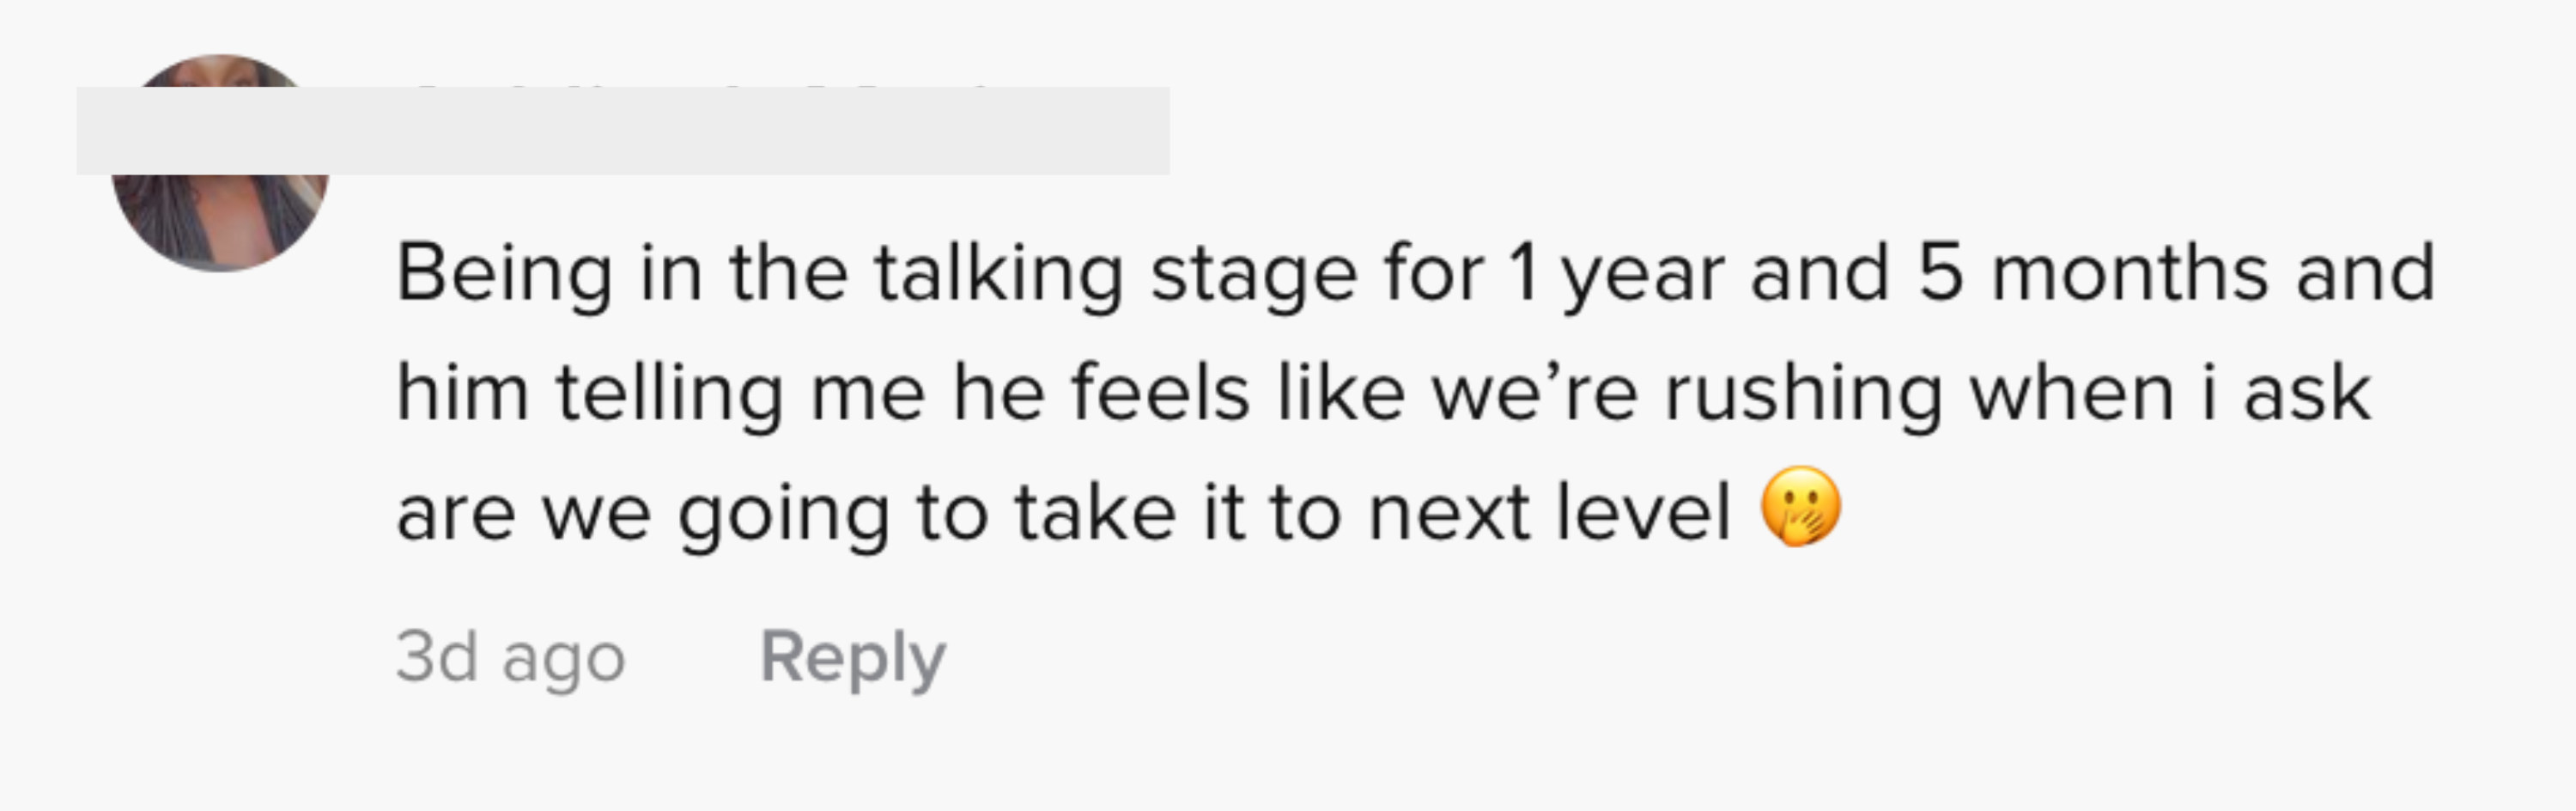 Being in the talking stage for one year and five months, and him telling me he feels like we're rushing when I ask are we going to take it to the next level